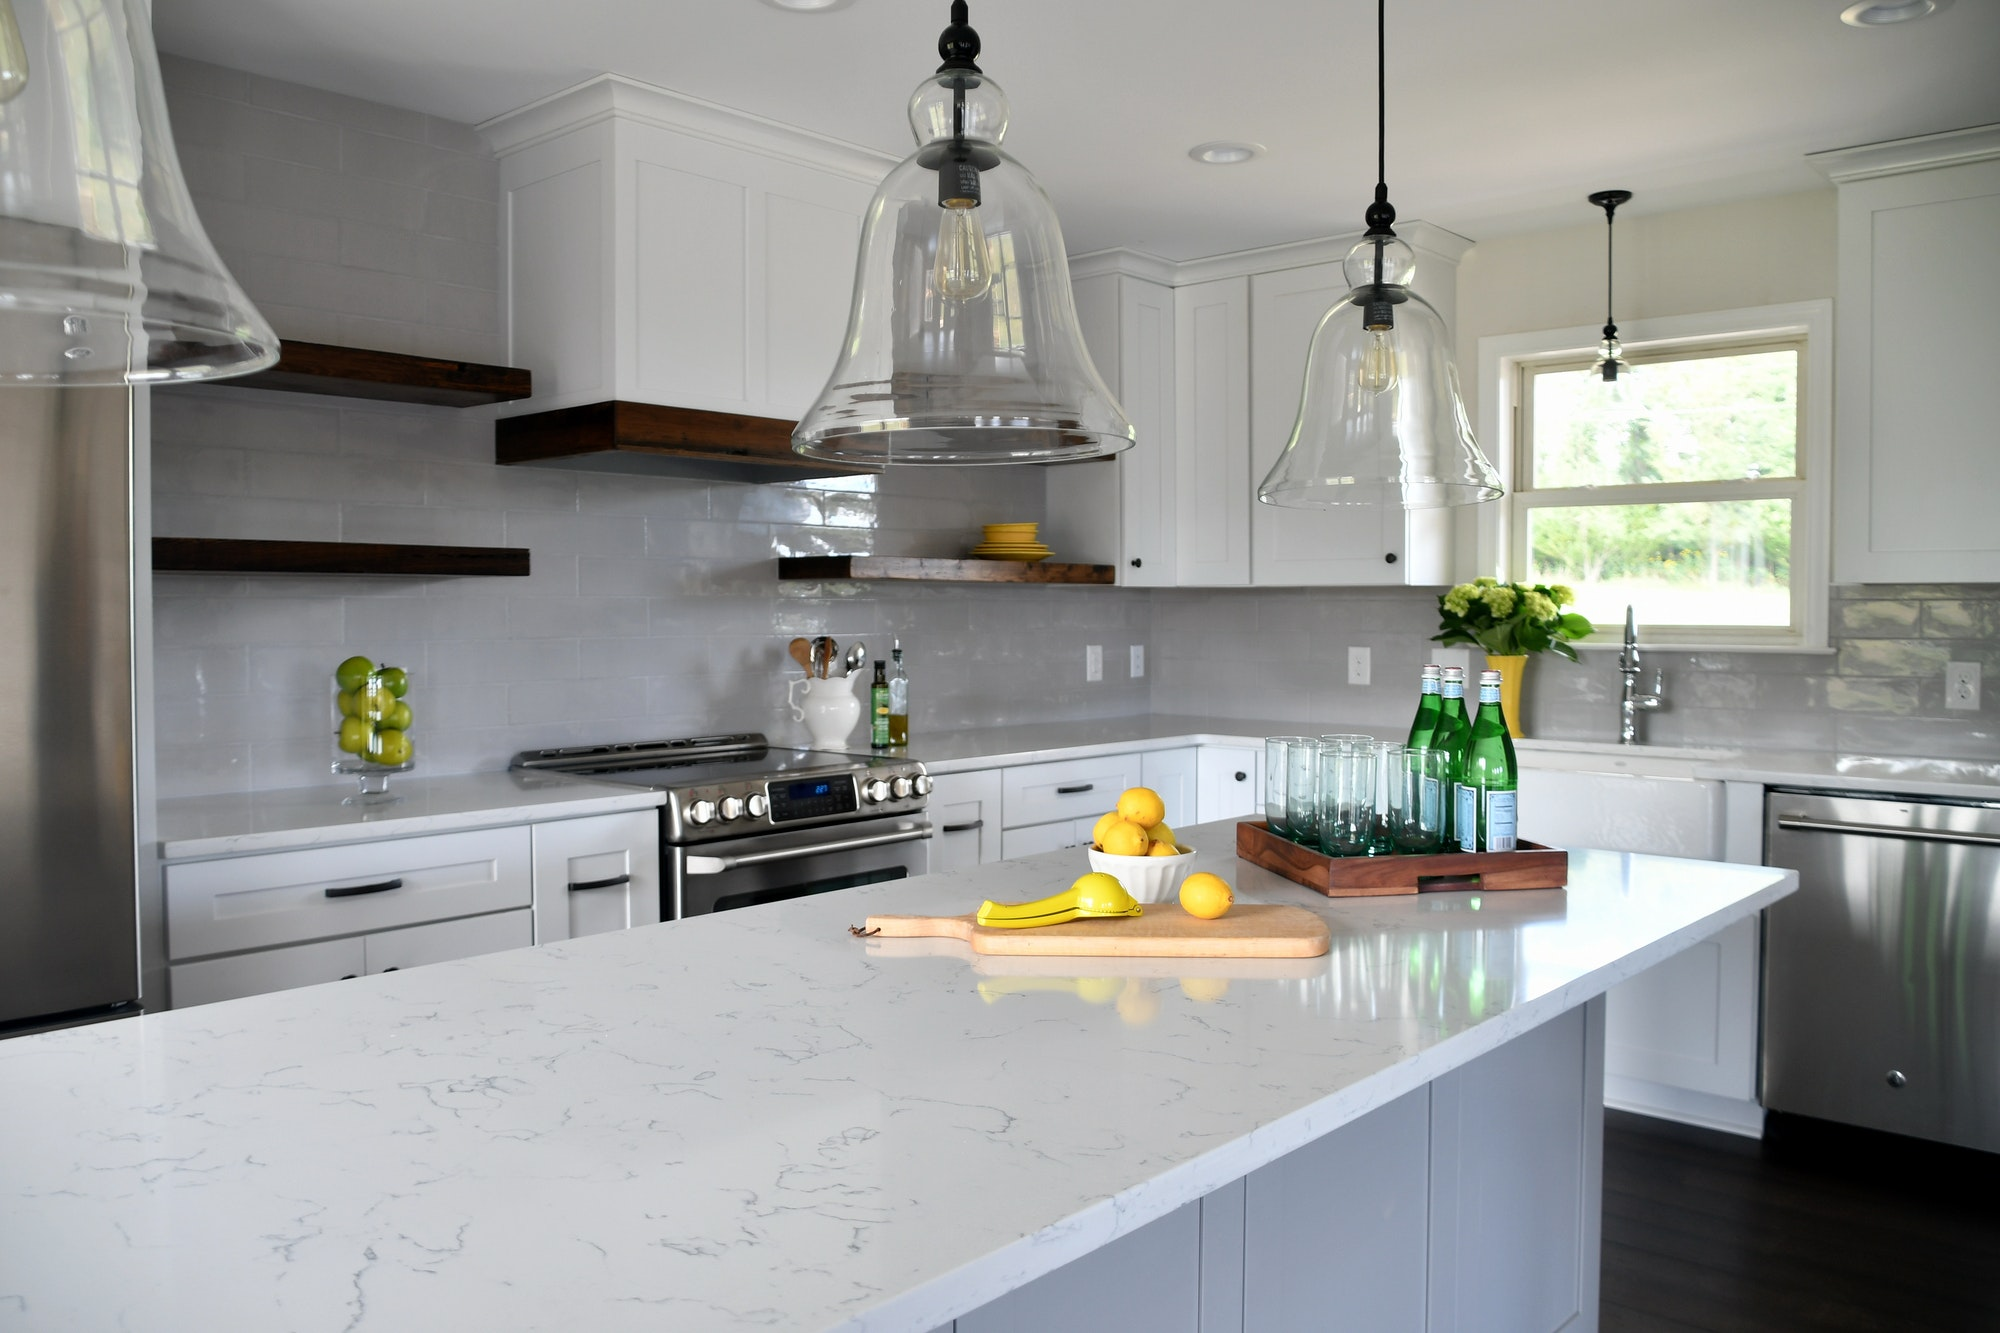 Bright cheery kitchen in a new home with open concept layout, light and airy